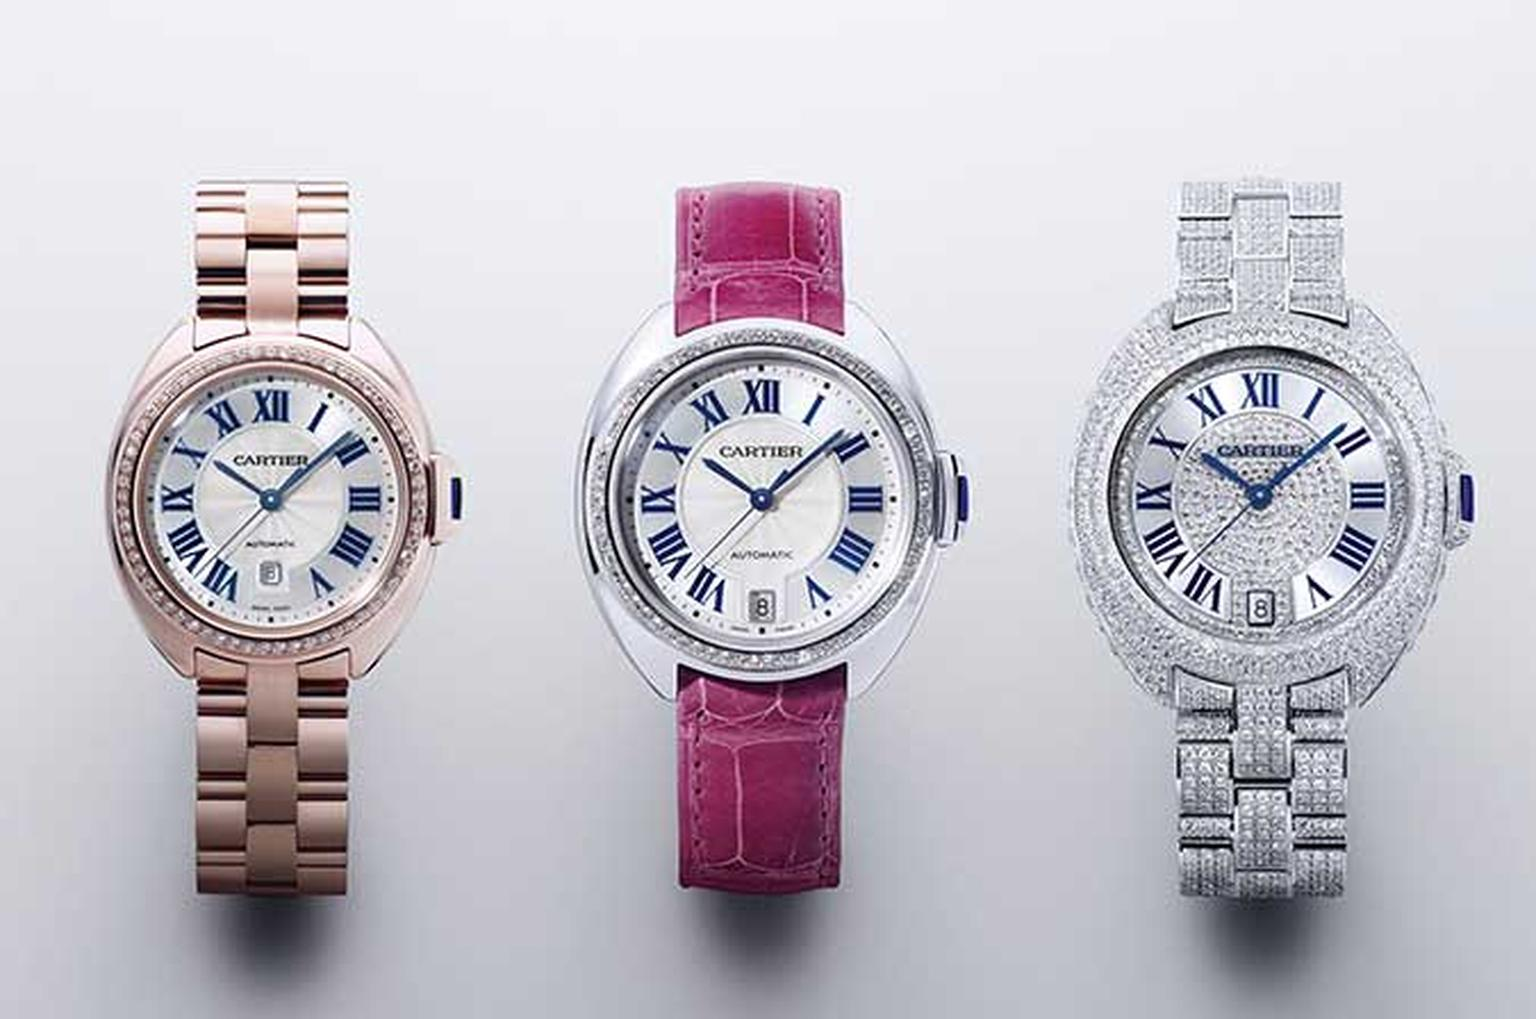 Cartier Cle watches HP